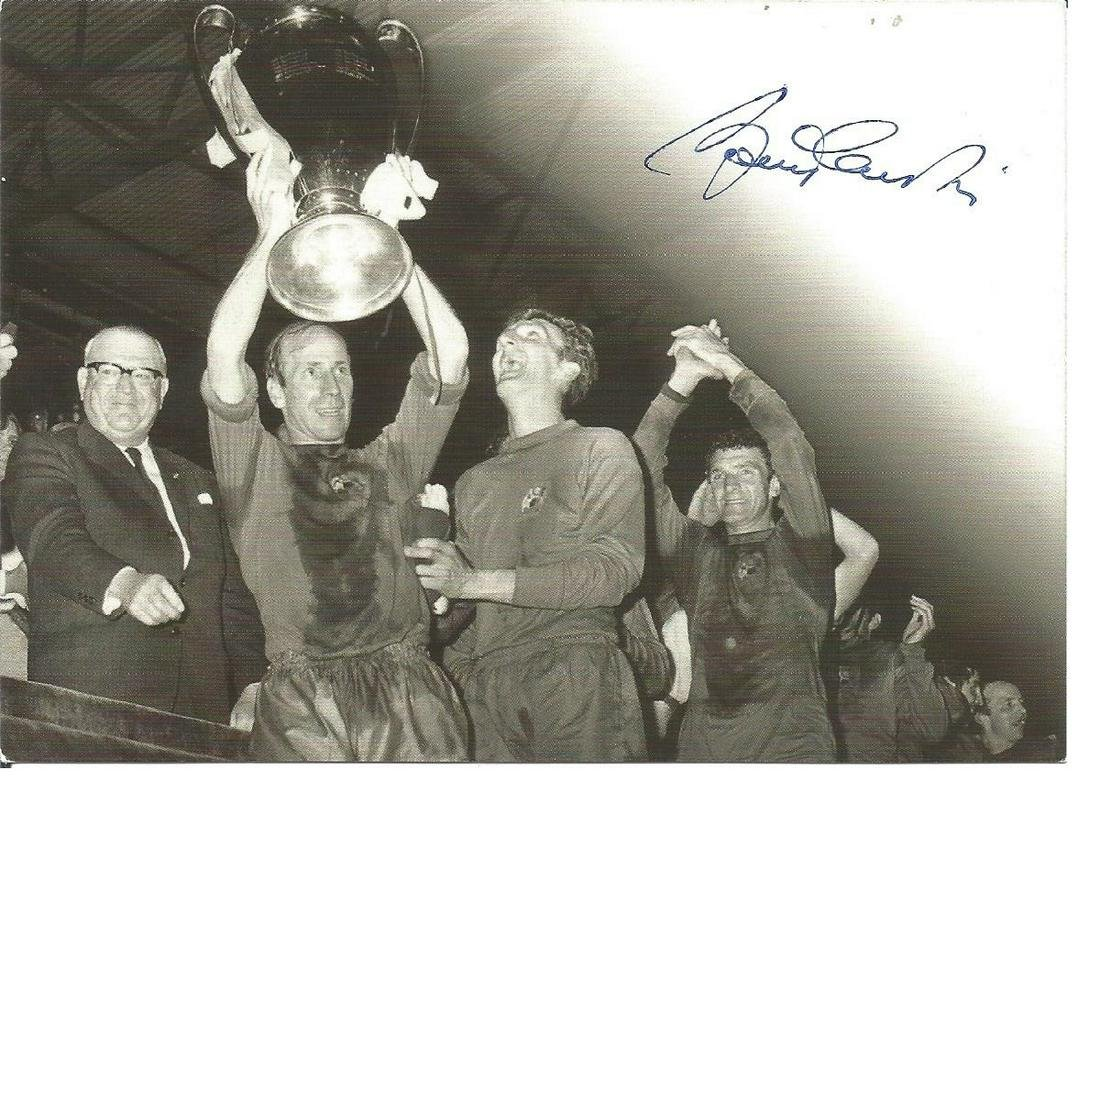 Sir Bobby Charlton signed 6x4 commemorative card with